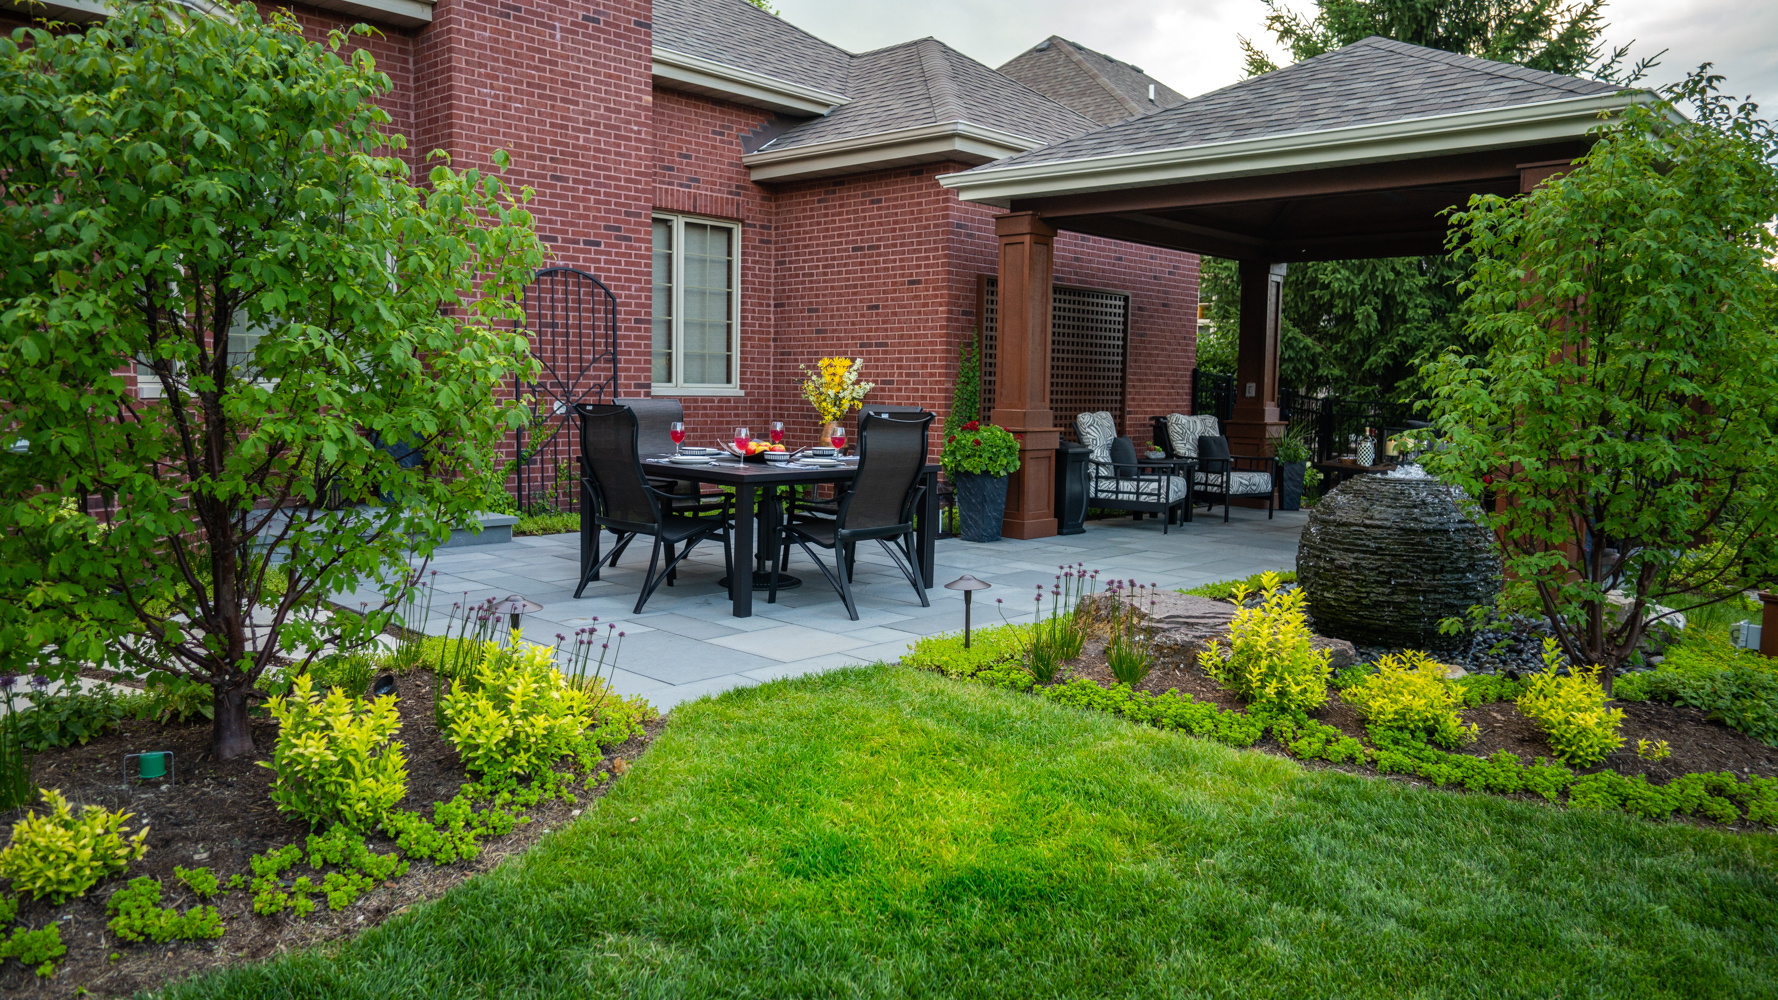 Beautiful patio, lawn, and pavilion